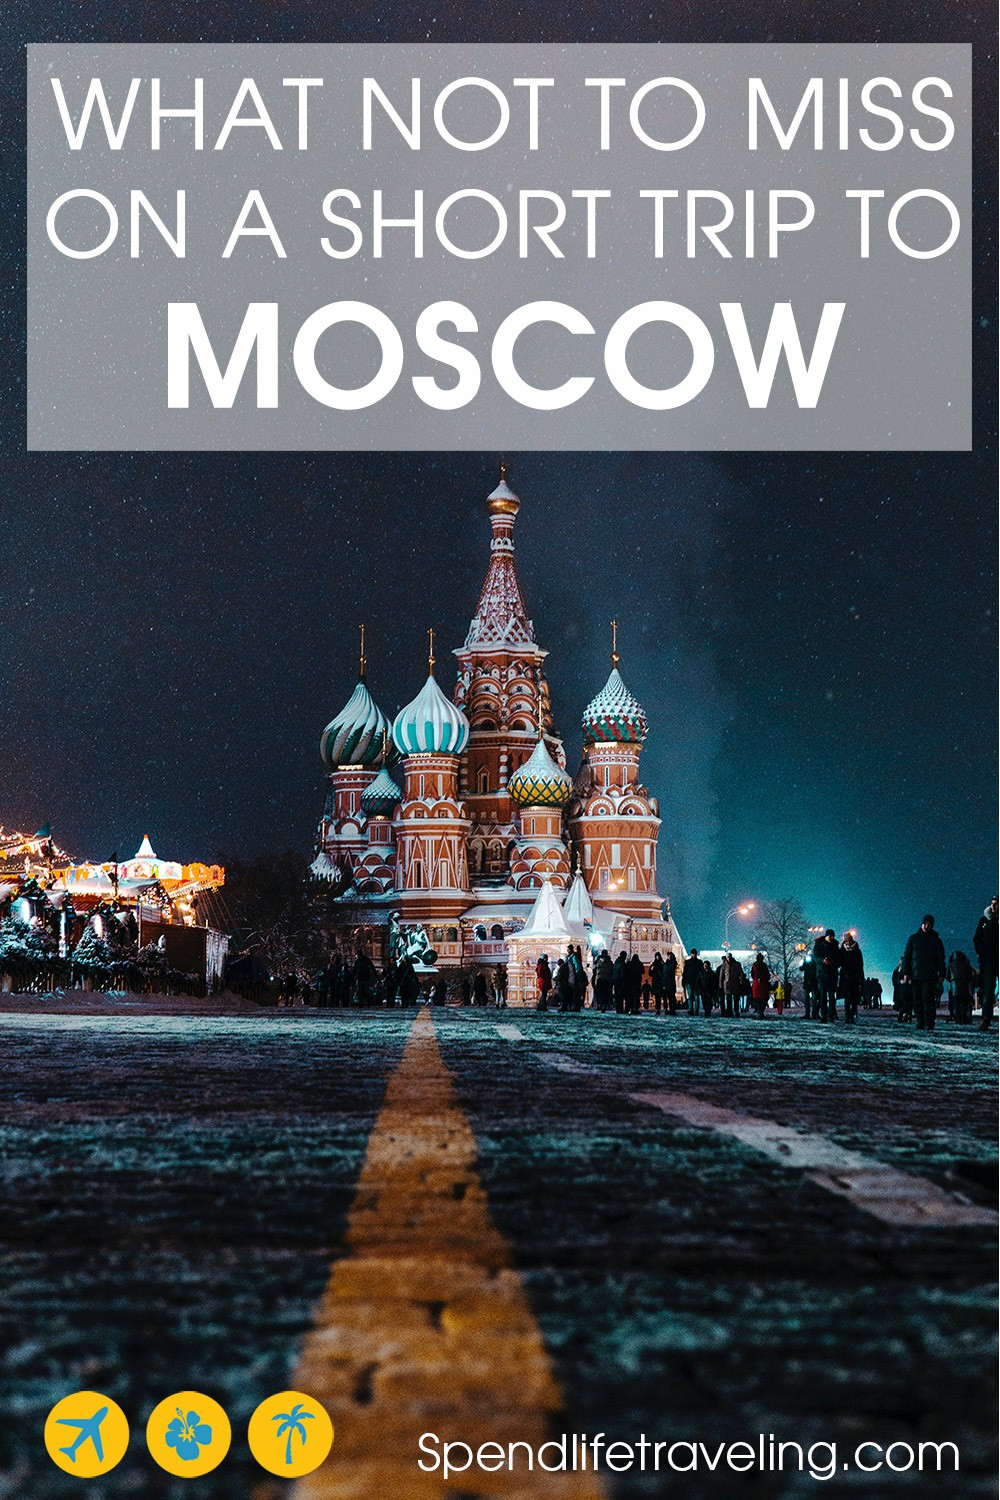 A practical 3-day Moscow itinerary